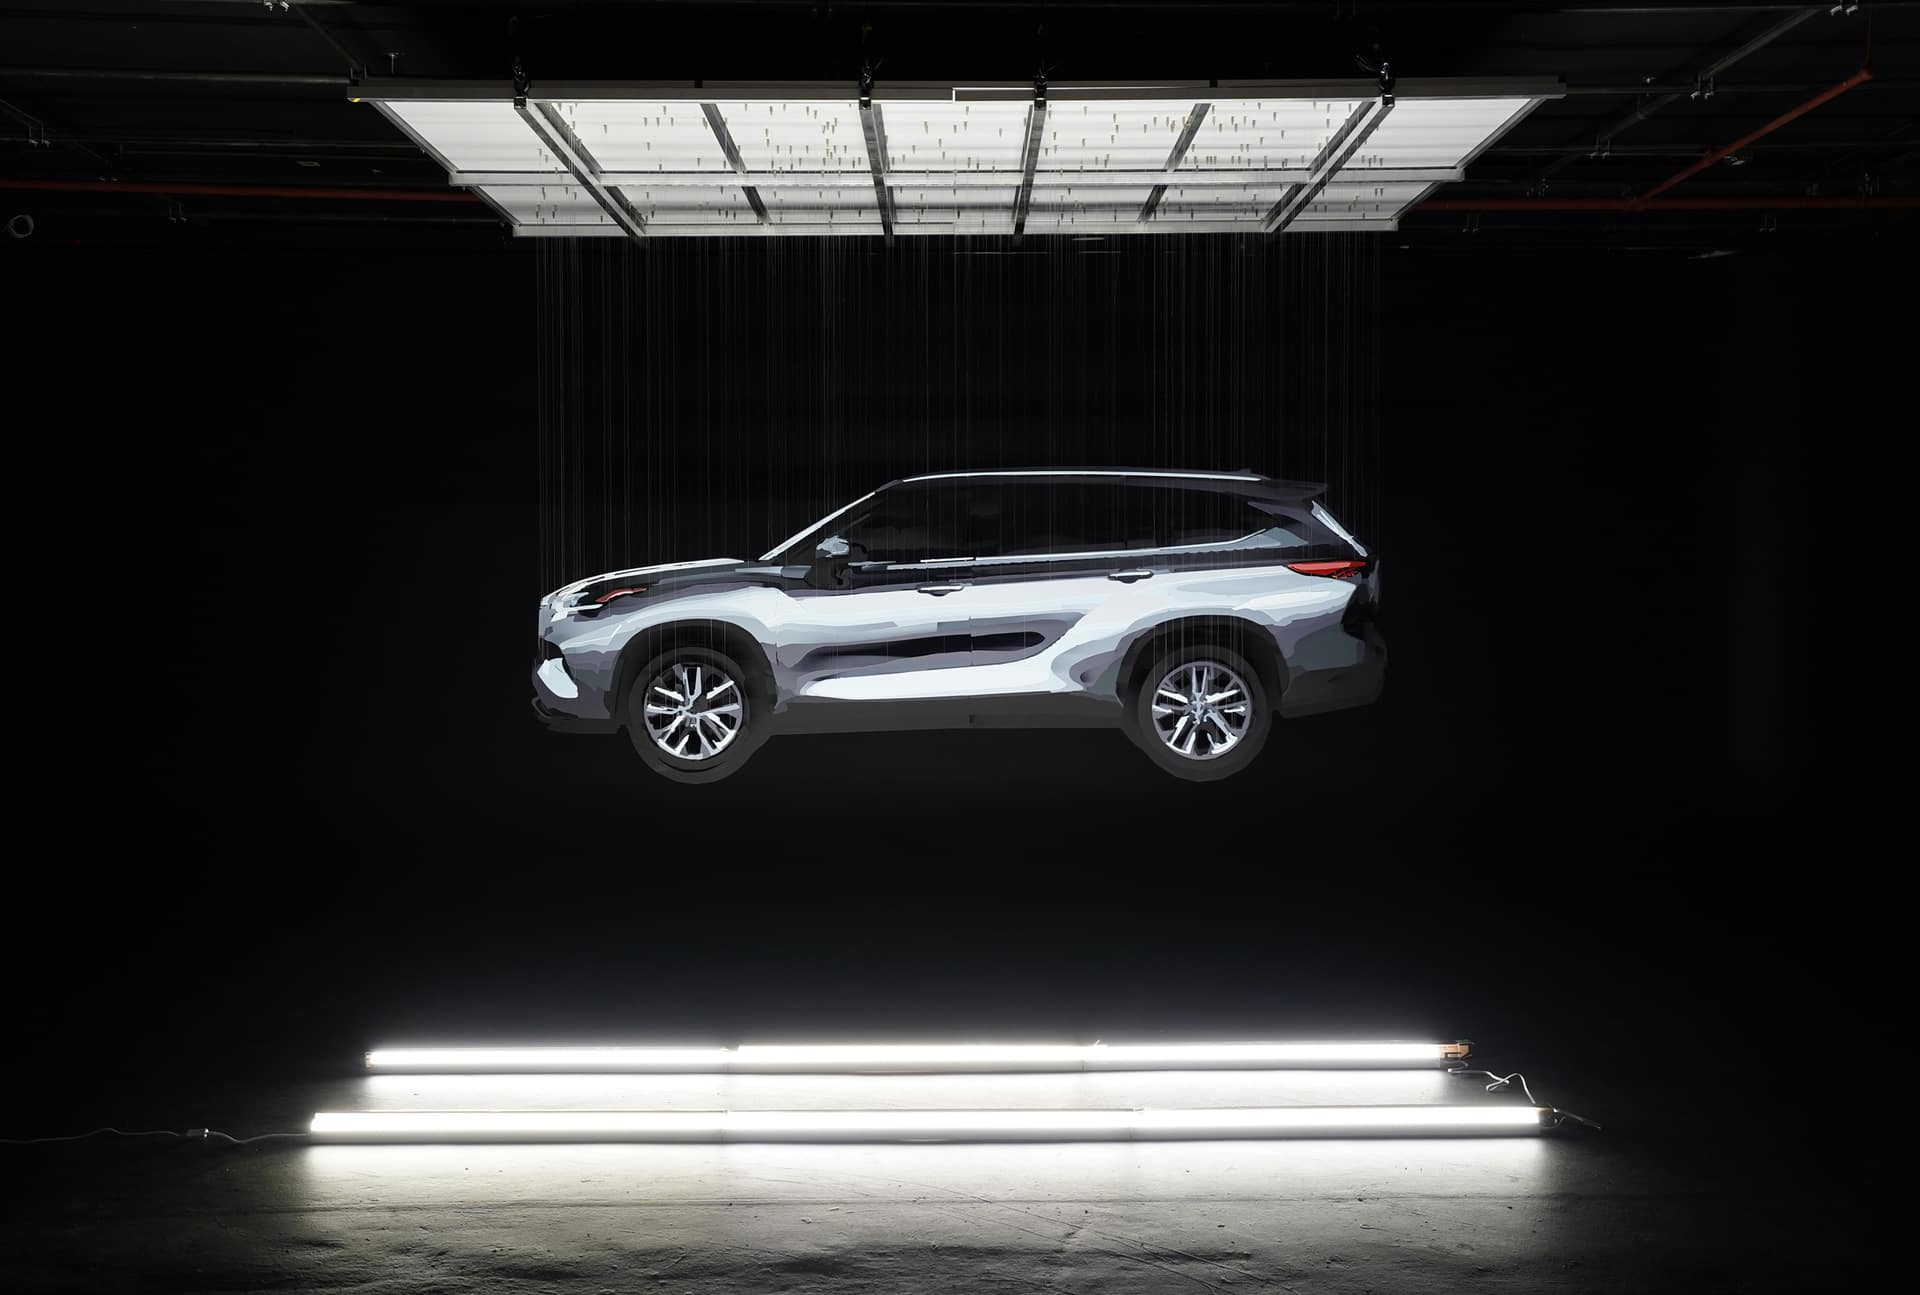 2020 Toyota Highlander Reveal Sculpture